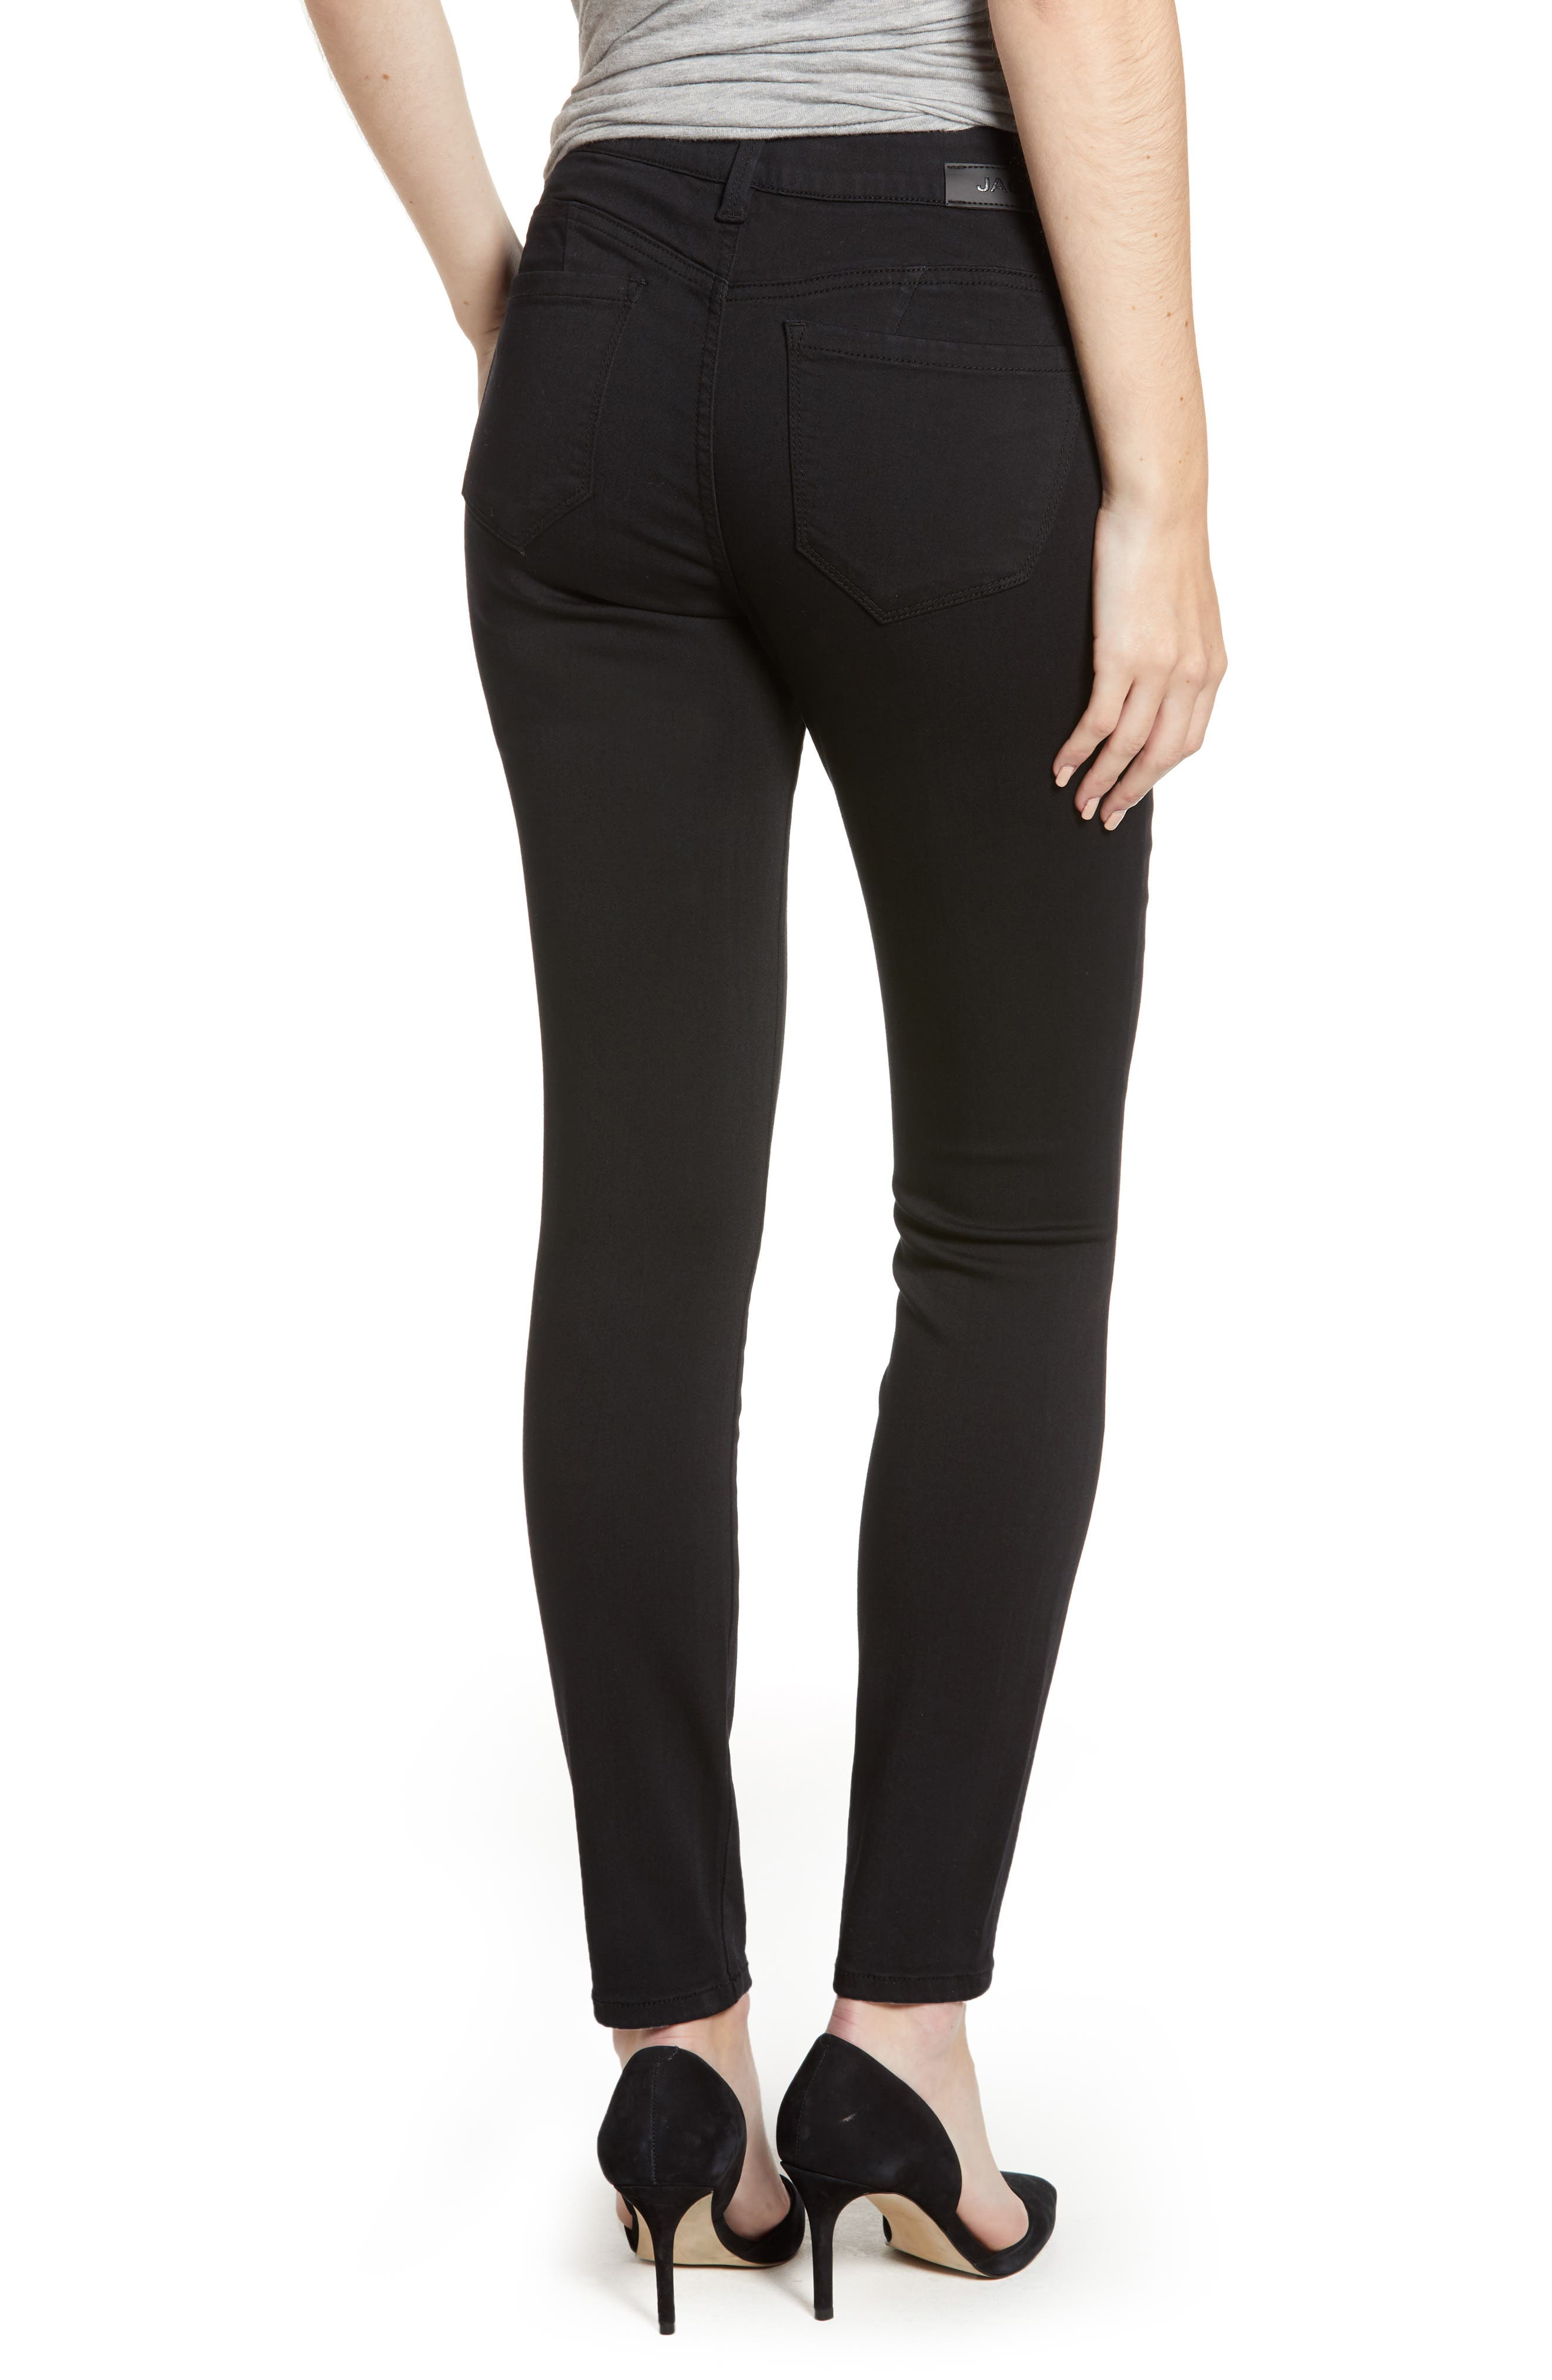 JAG JEANS, Bryn Pull-On Jeans, Alternate thumbnail 2, color, BLACK